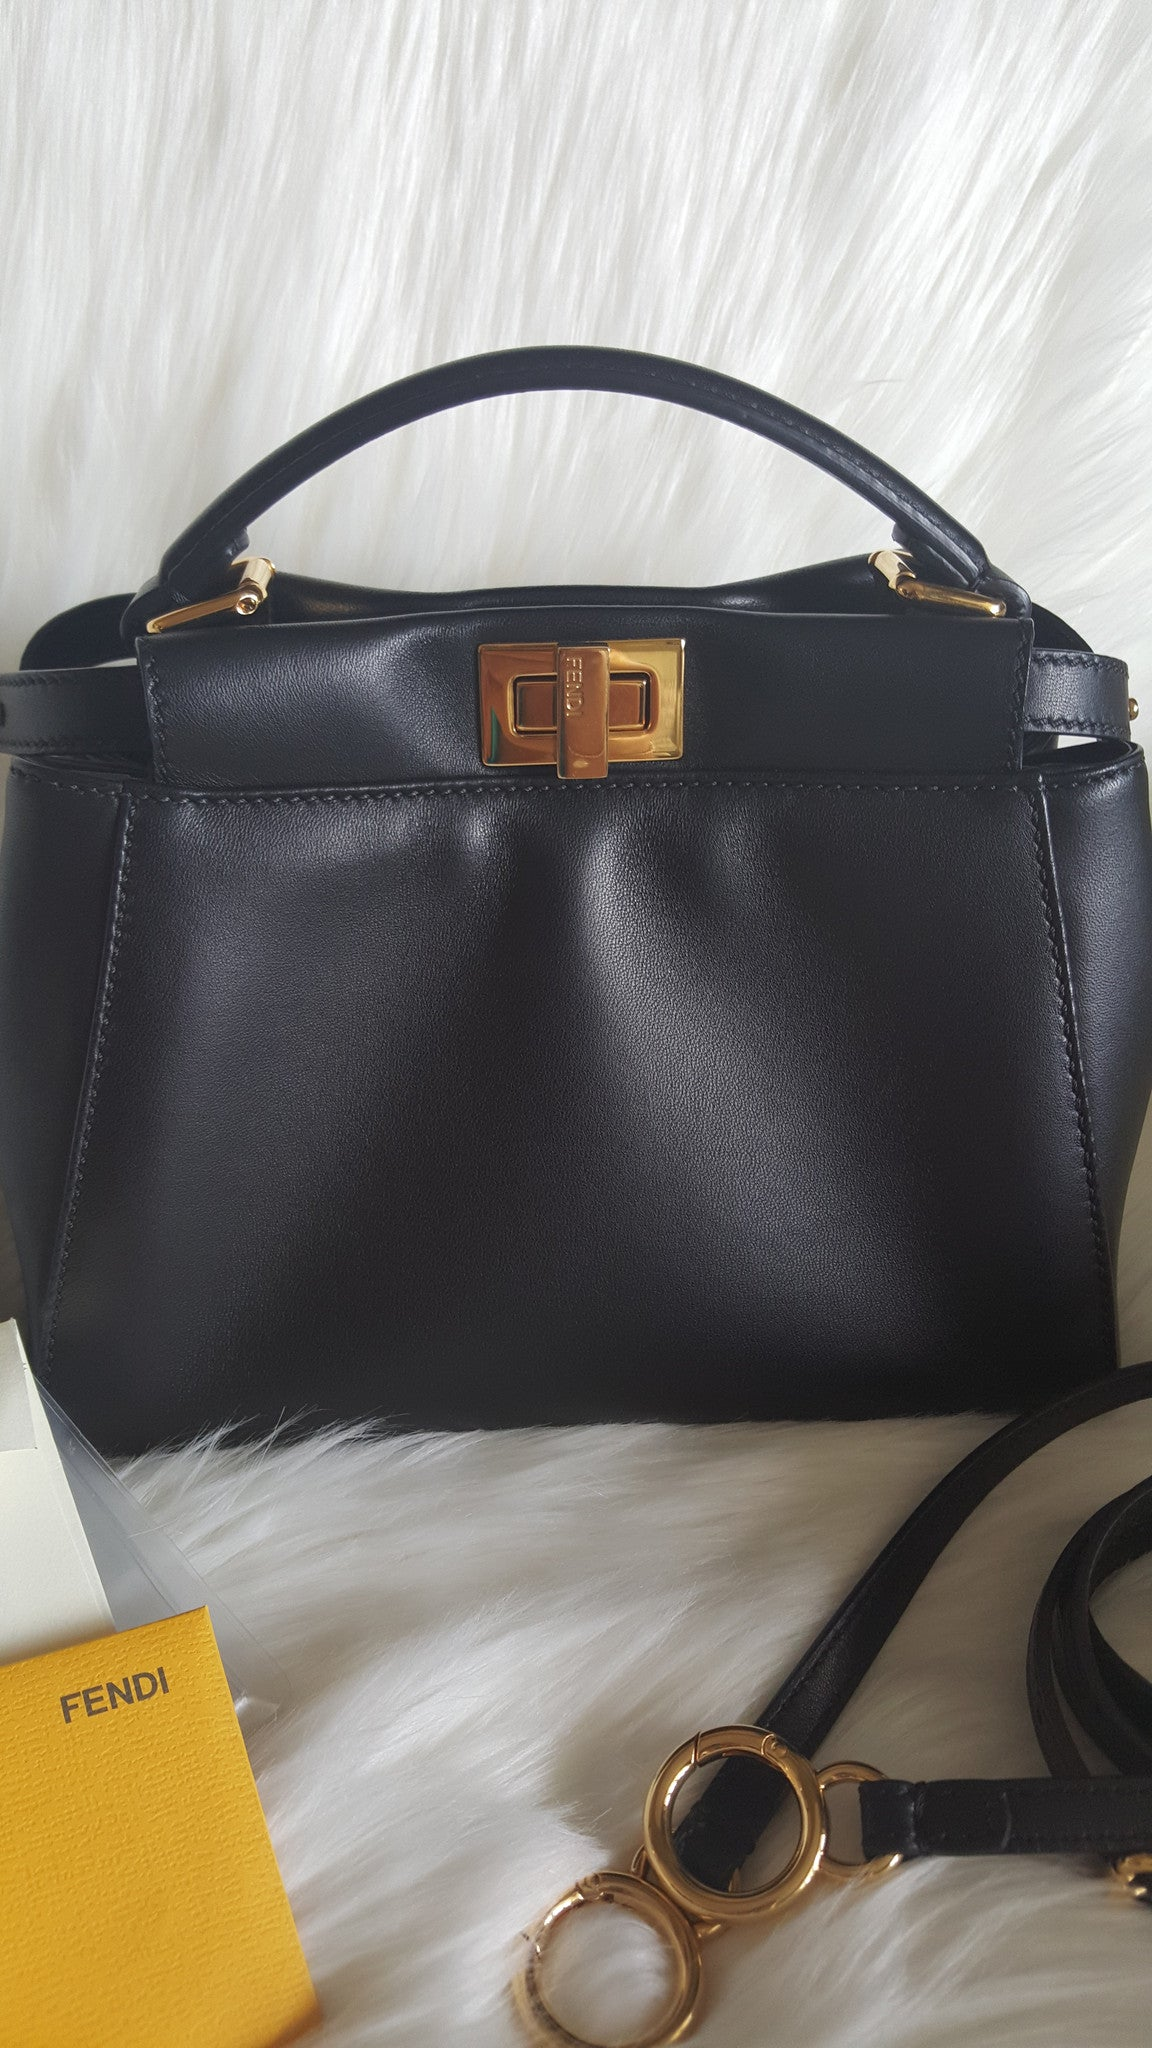 FENDI PEEKABOO MINI SATCHEL - CALFSKIN LEATHER